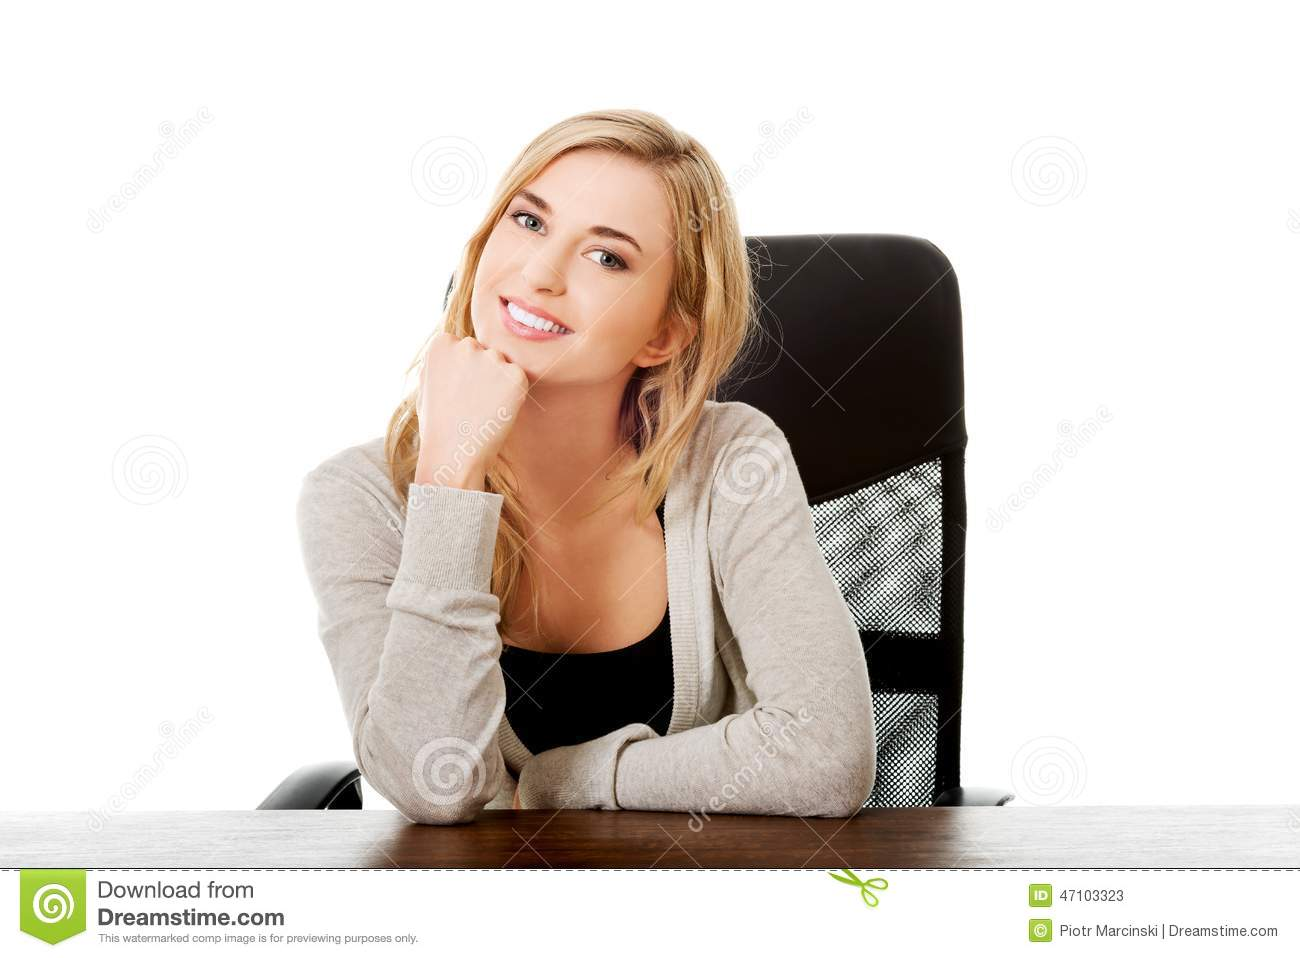 happy-woman-sitting-desk-touching-chin-47103323.jpg